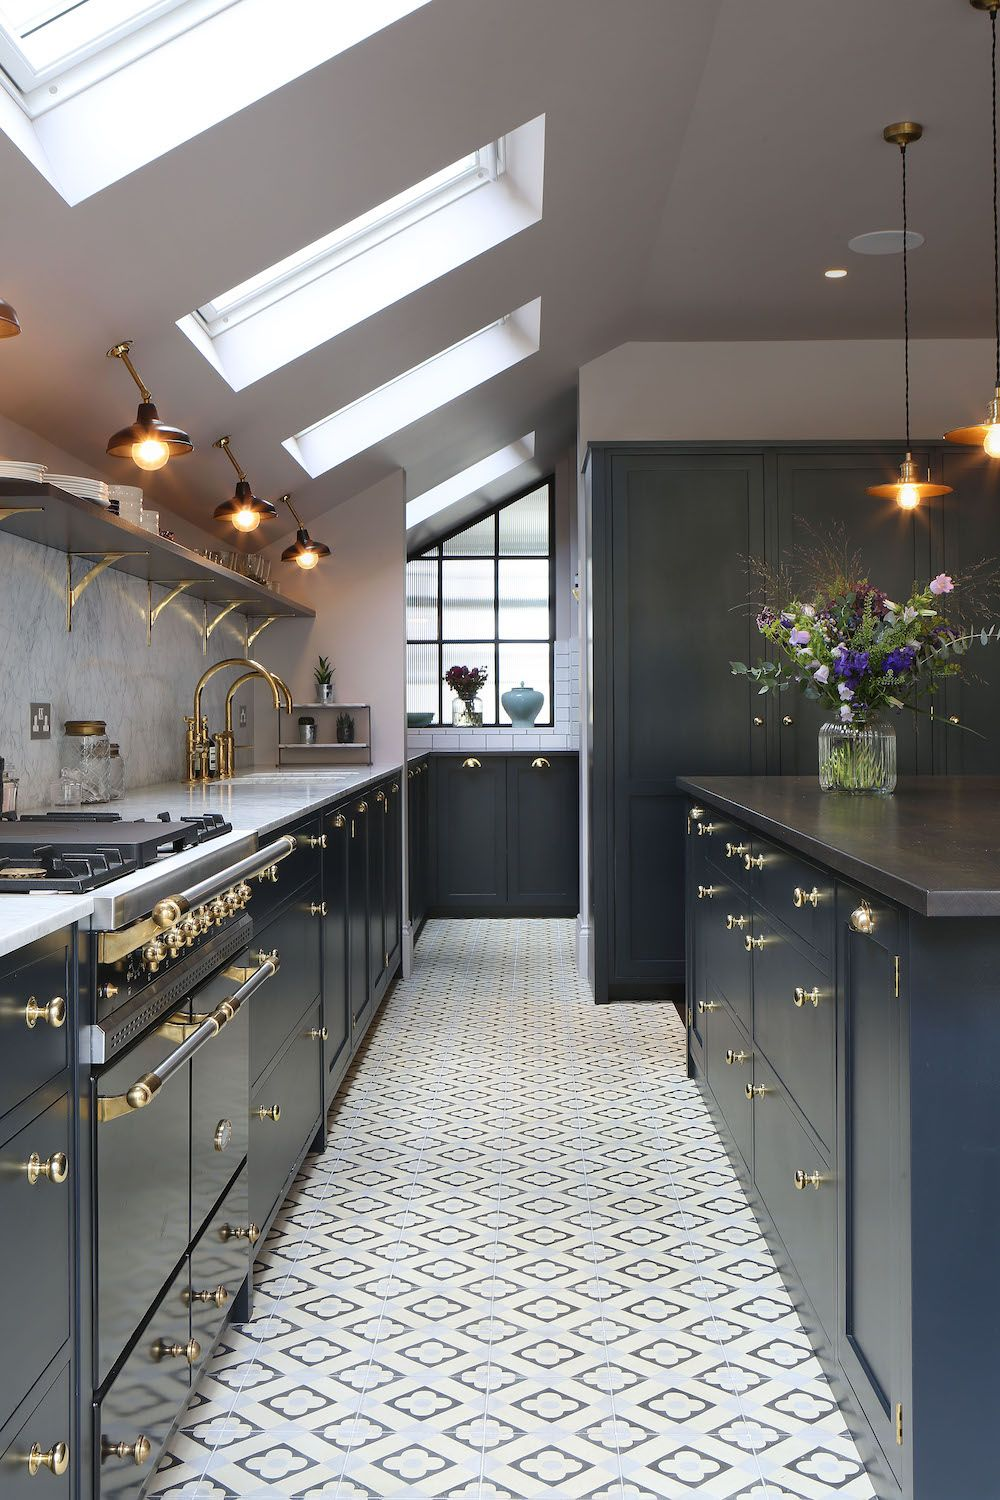 its lighting vaulted kitchens equally ceilings ceiling kitchen barrel with the interesting is but